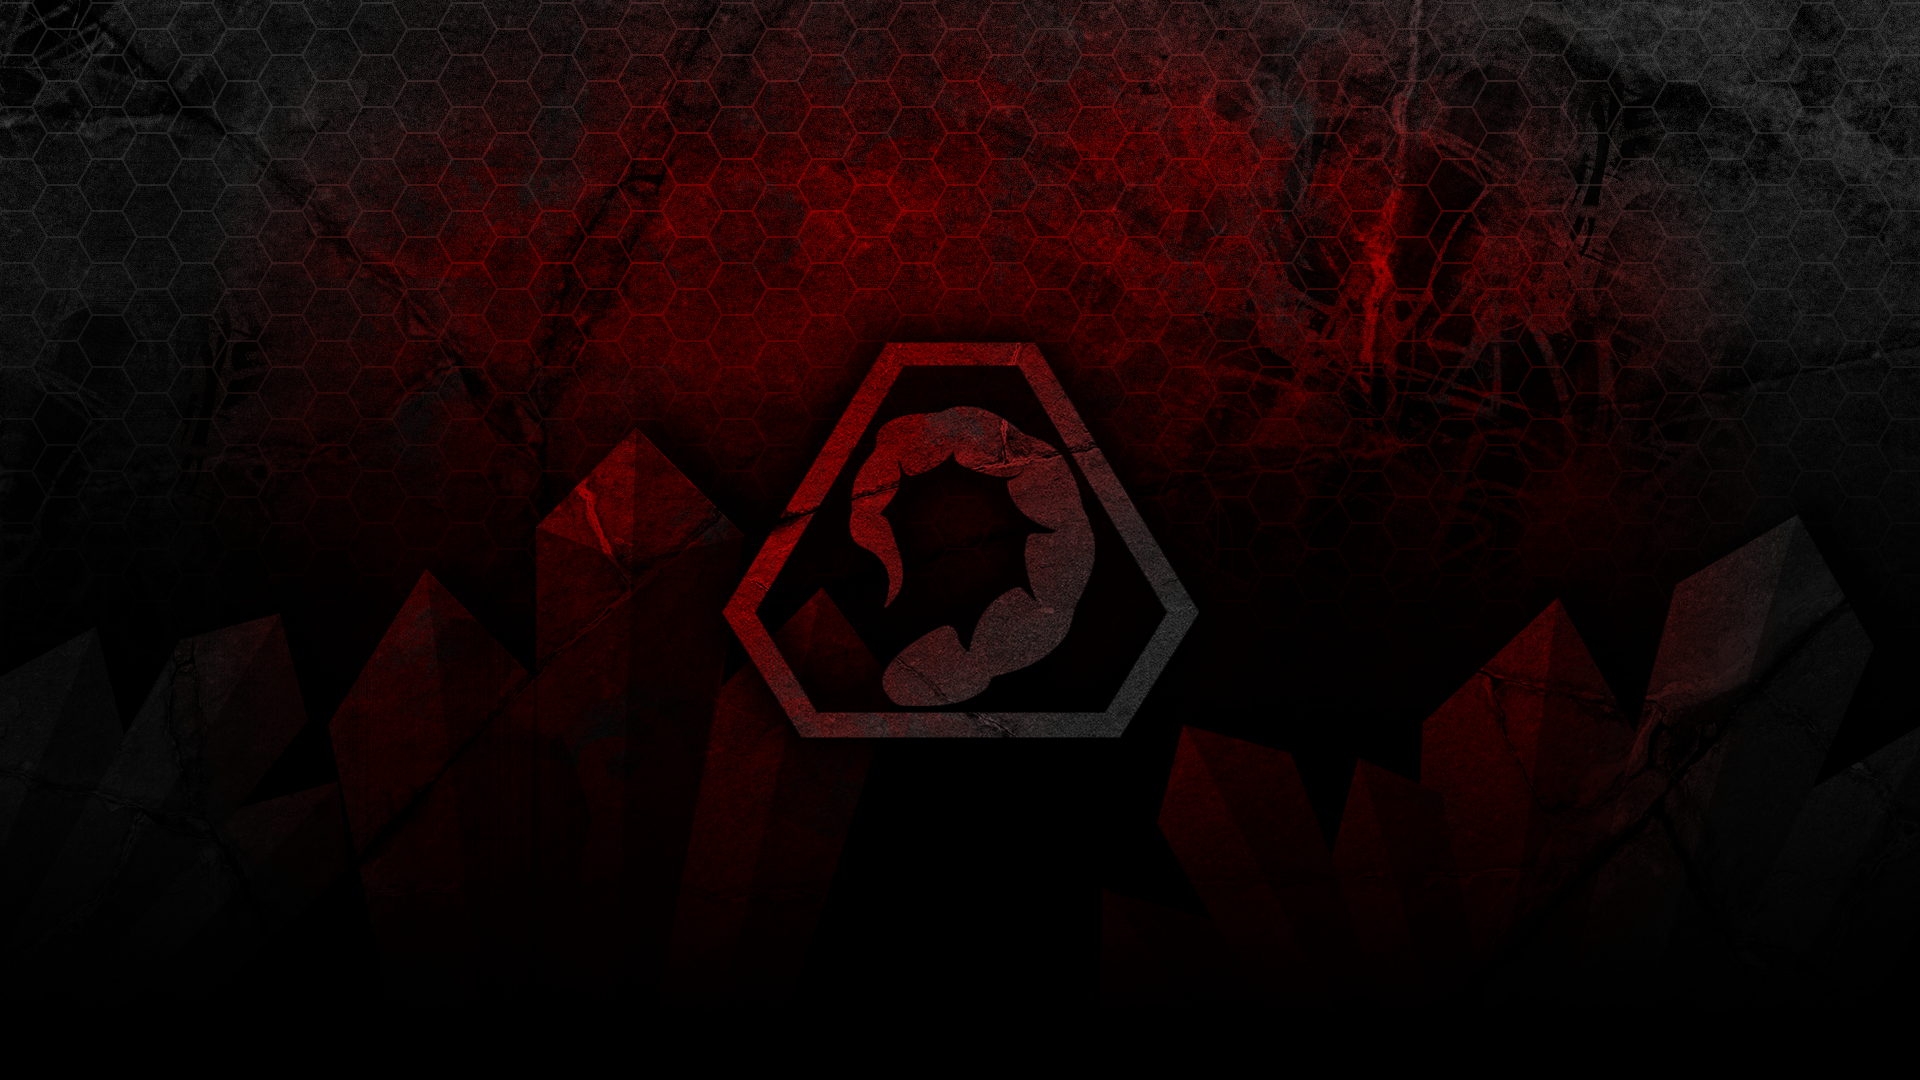 another command and conquer desktop background by xinflux